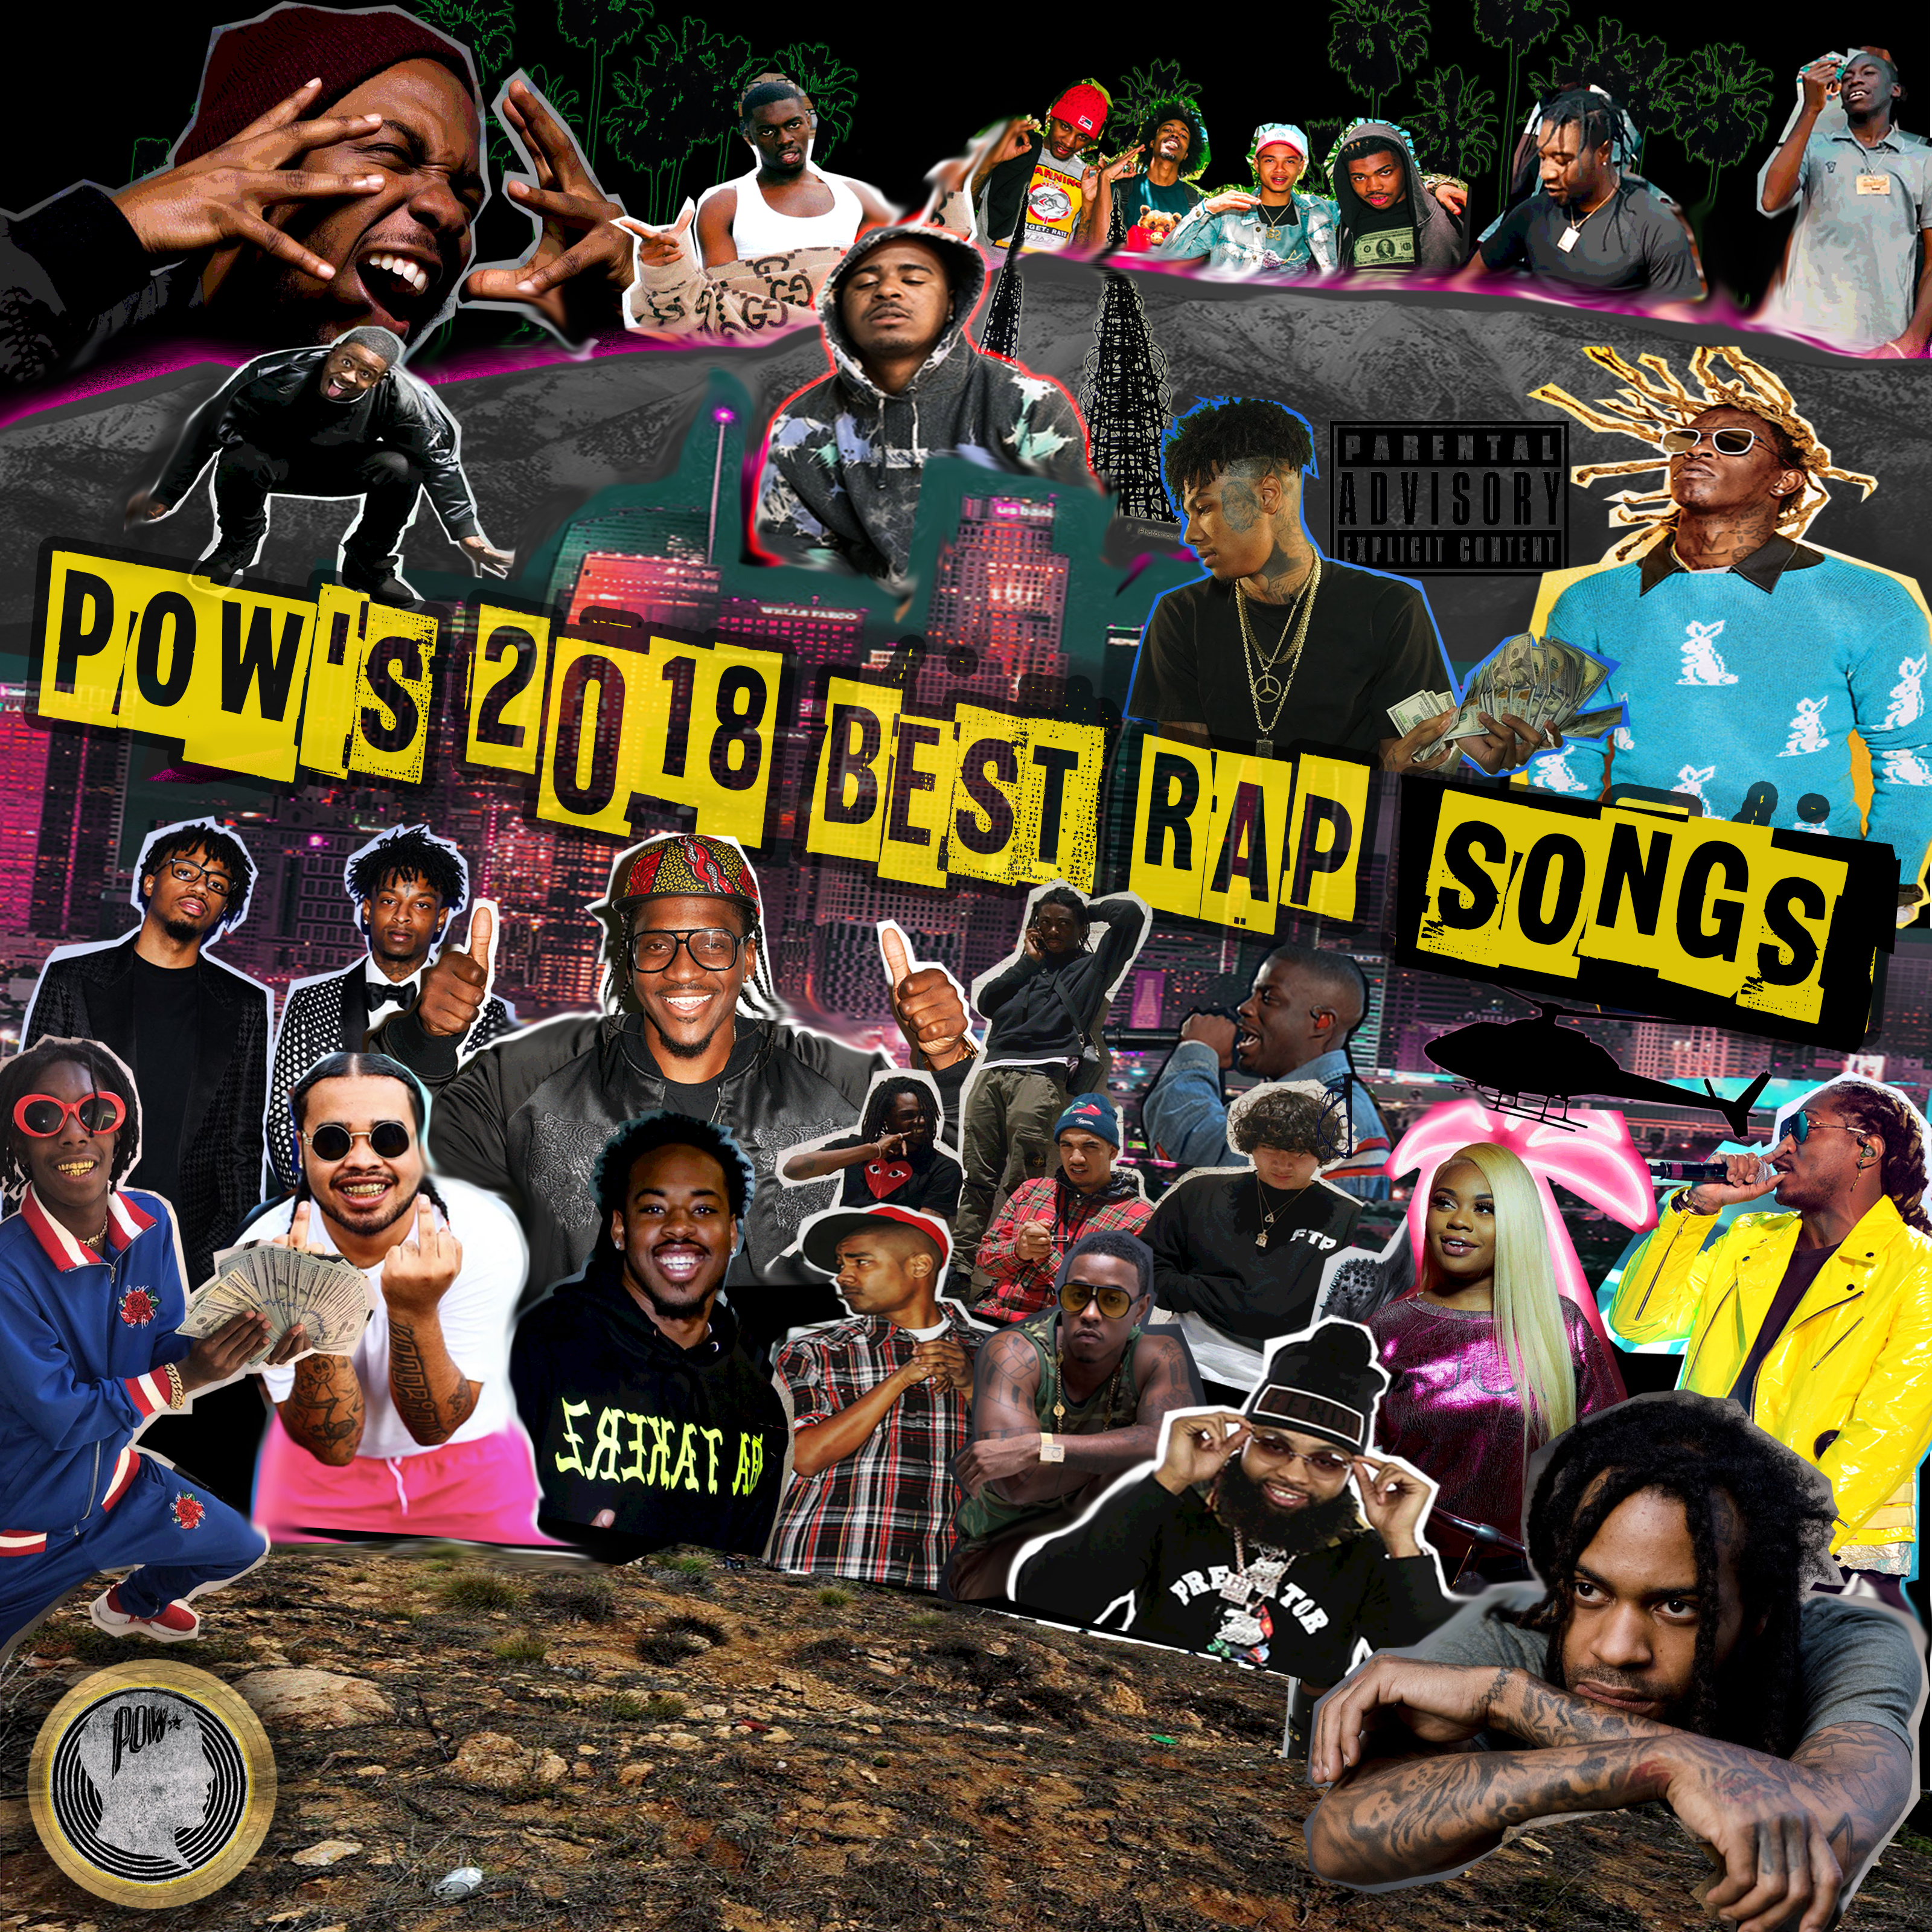 The POW Best Rap Songs of 2018 | Passion of the Weiss